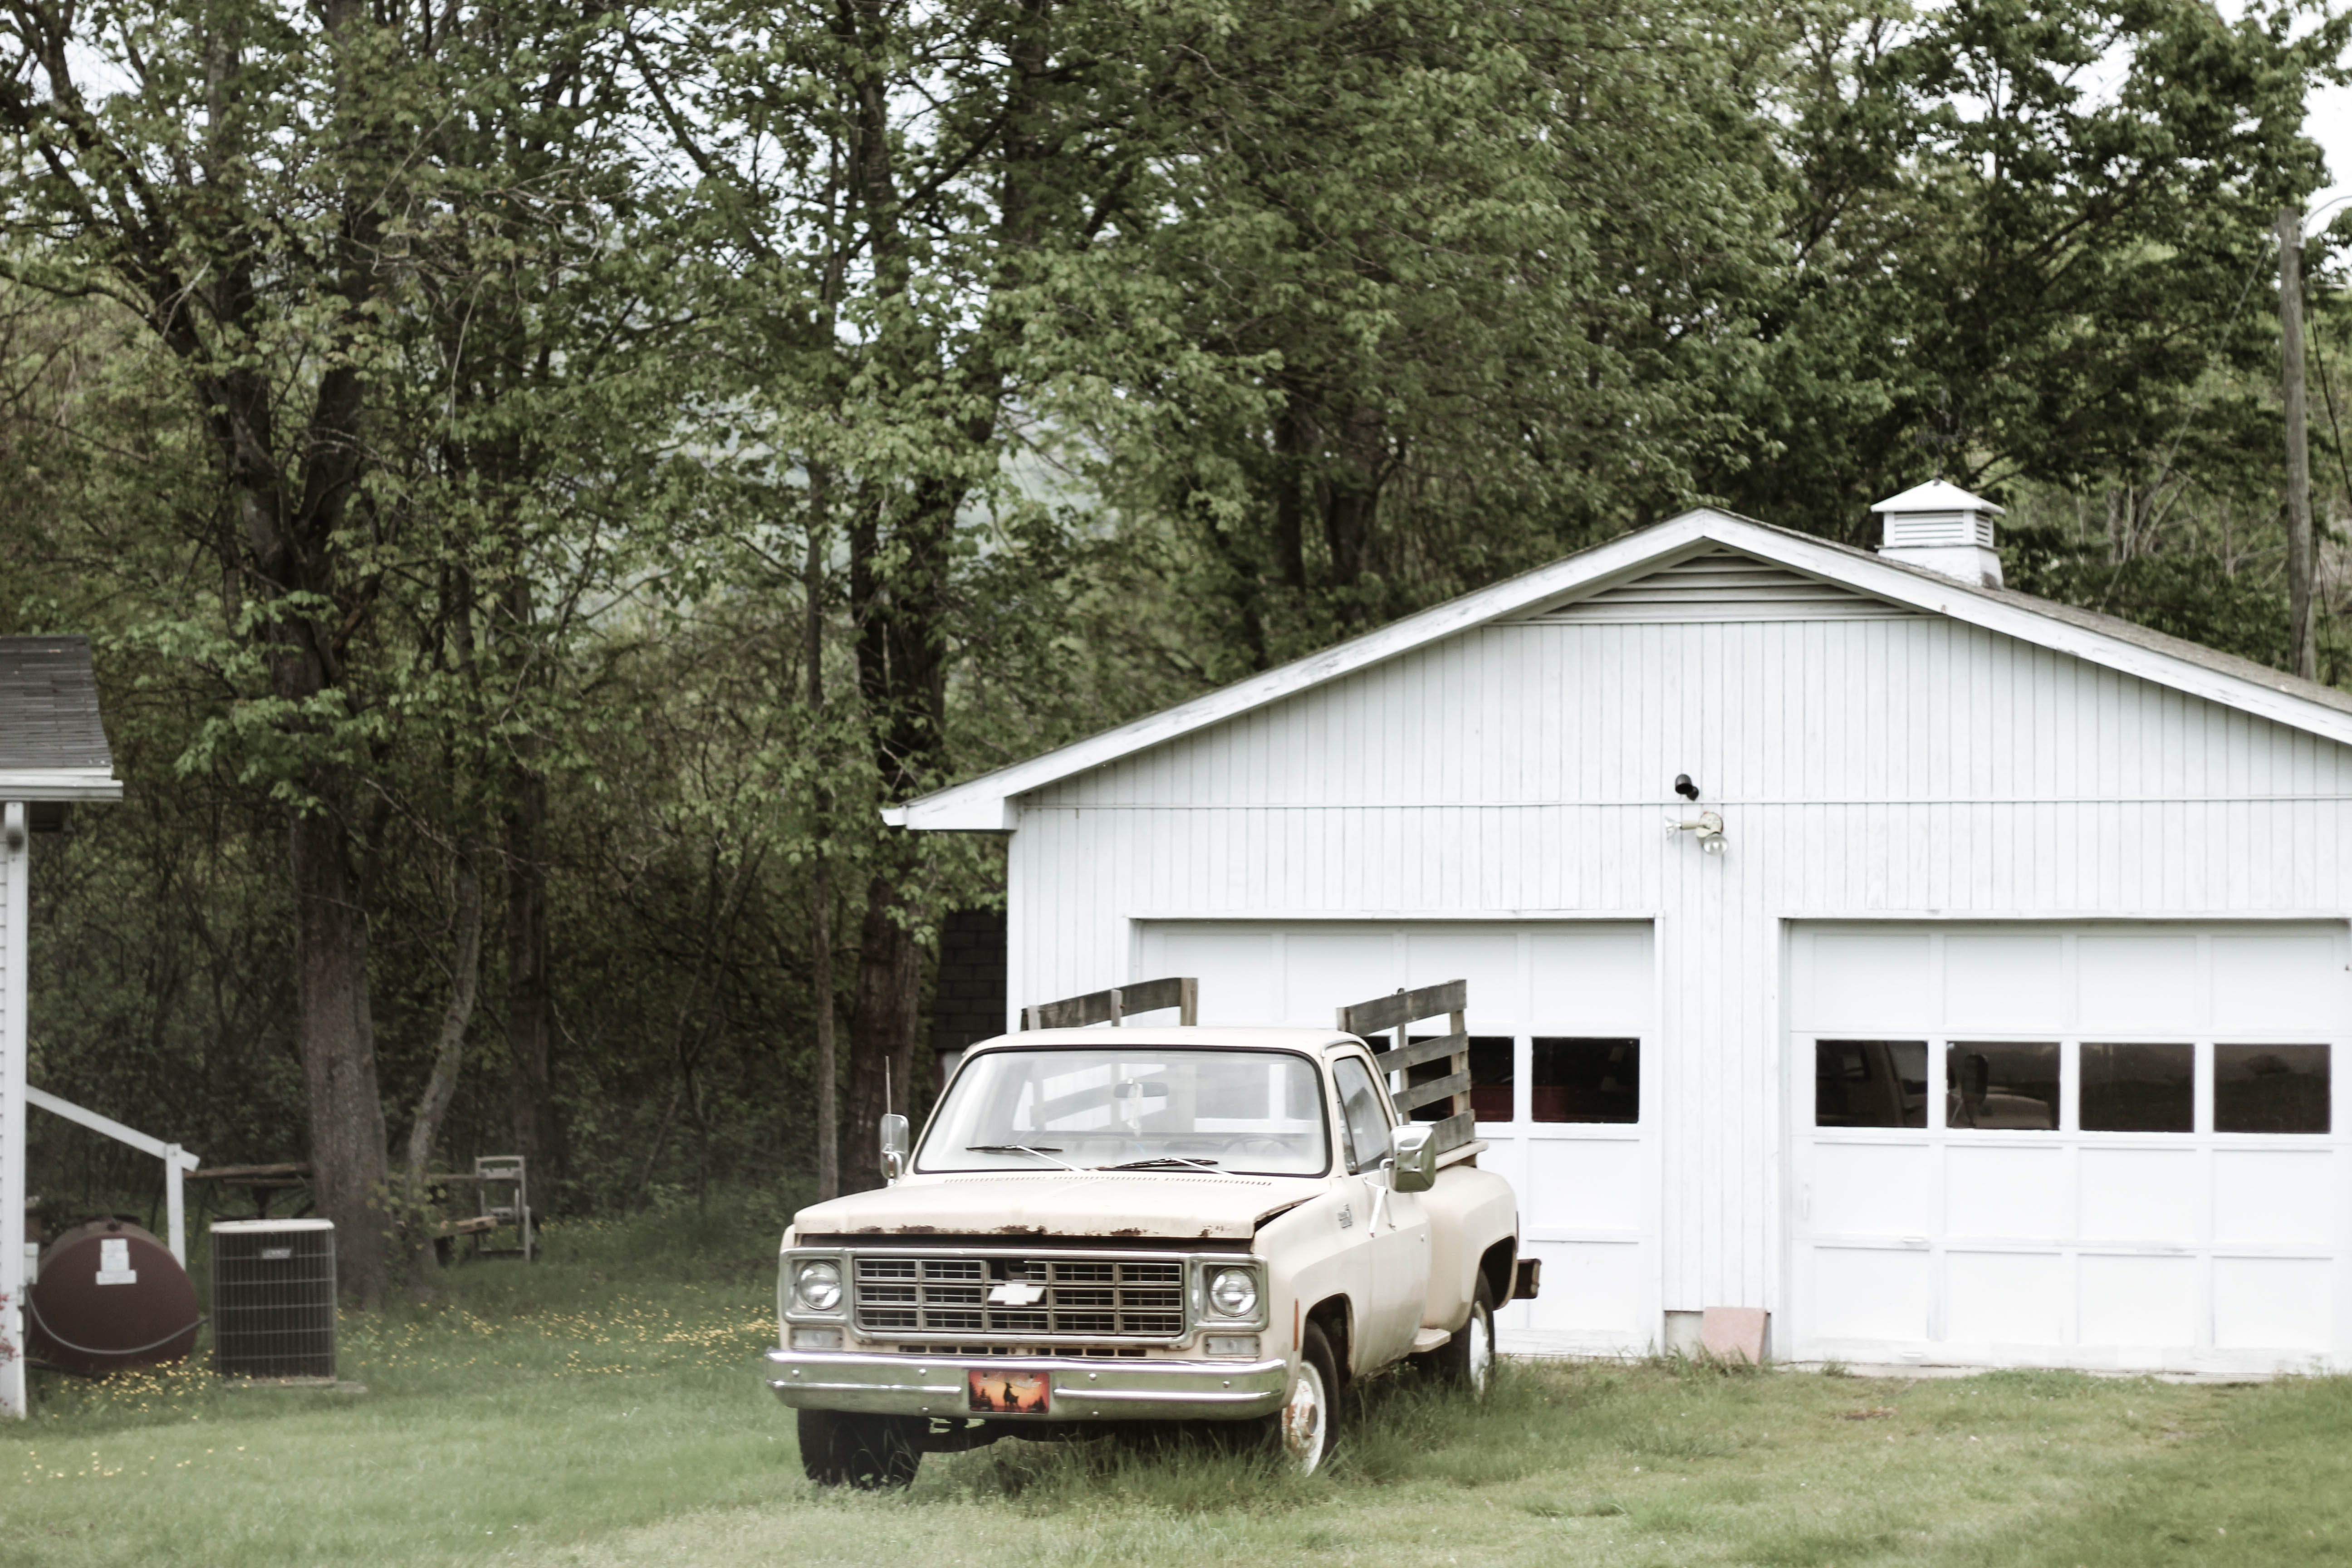 Gray Chevrolet Car Parked Near White Shed